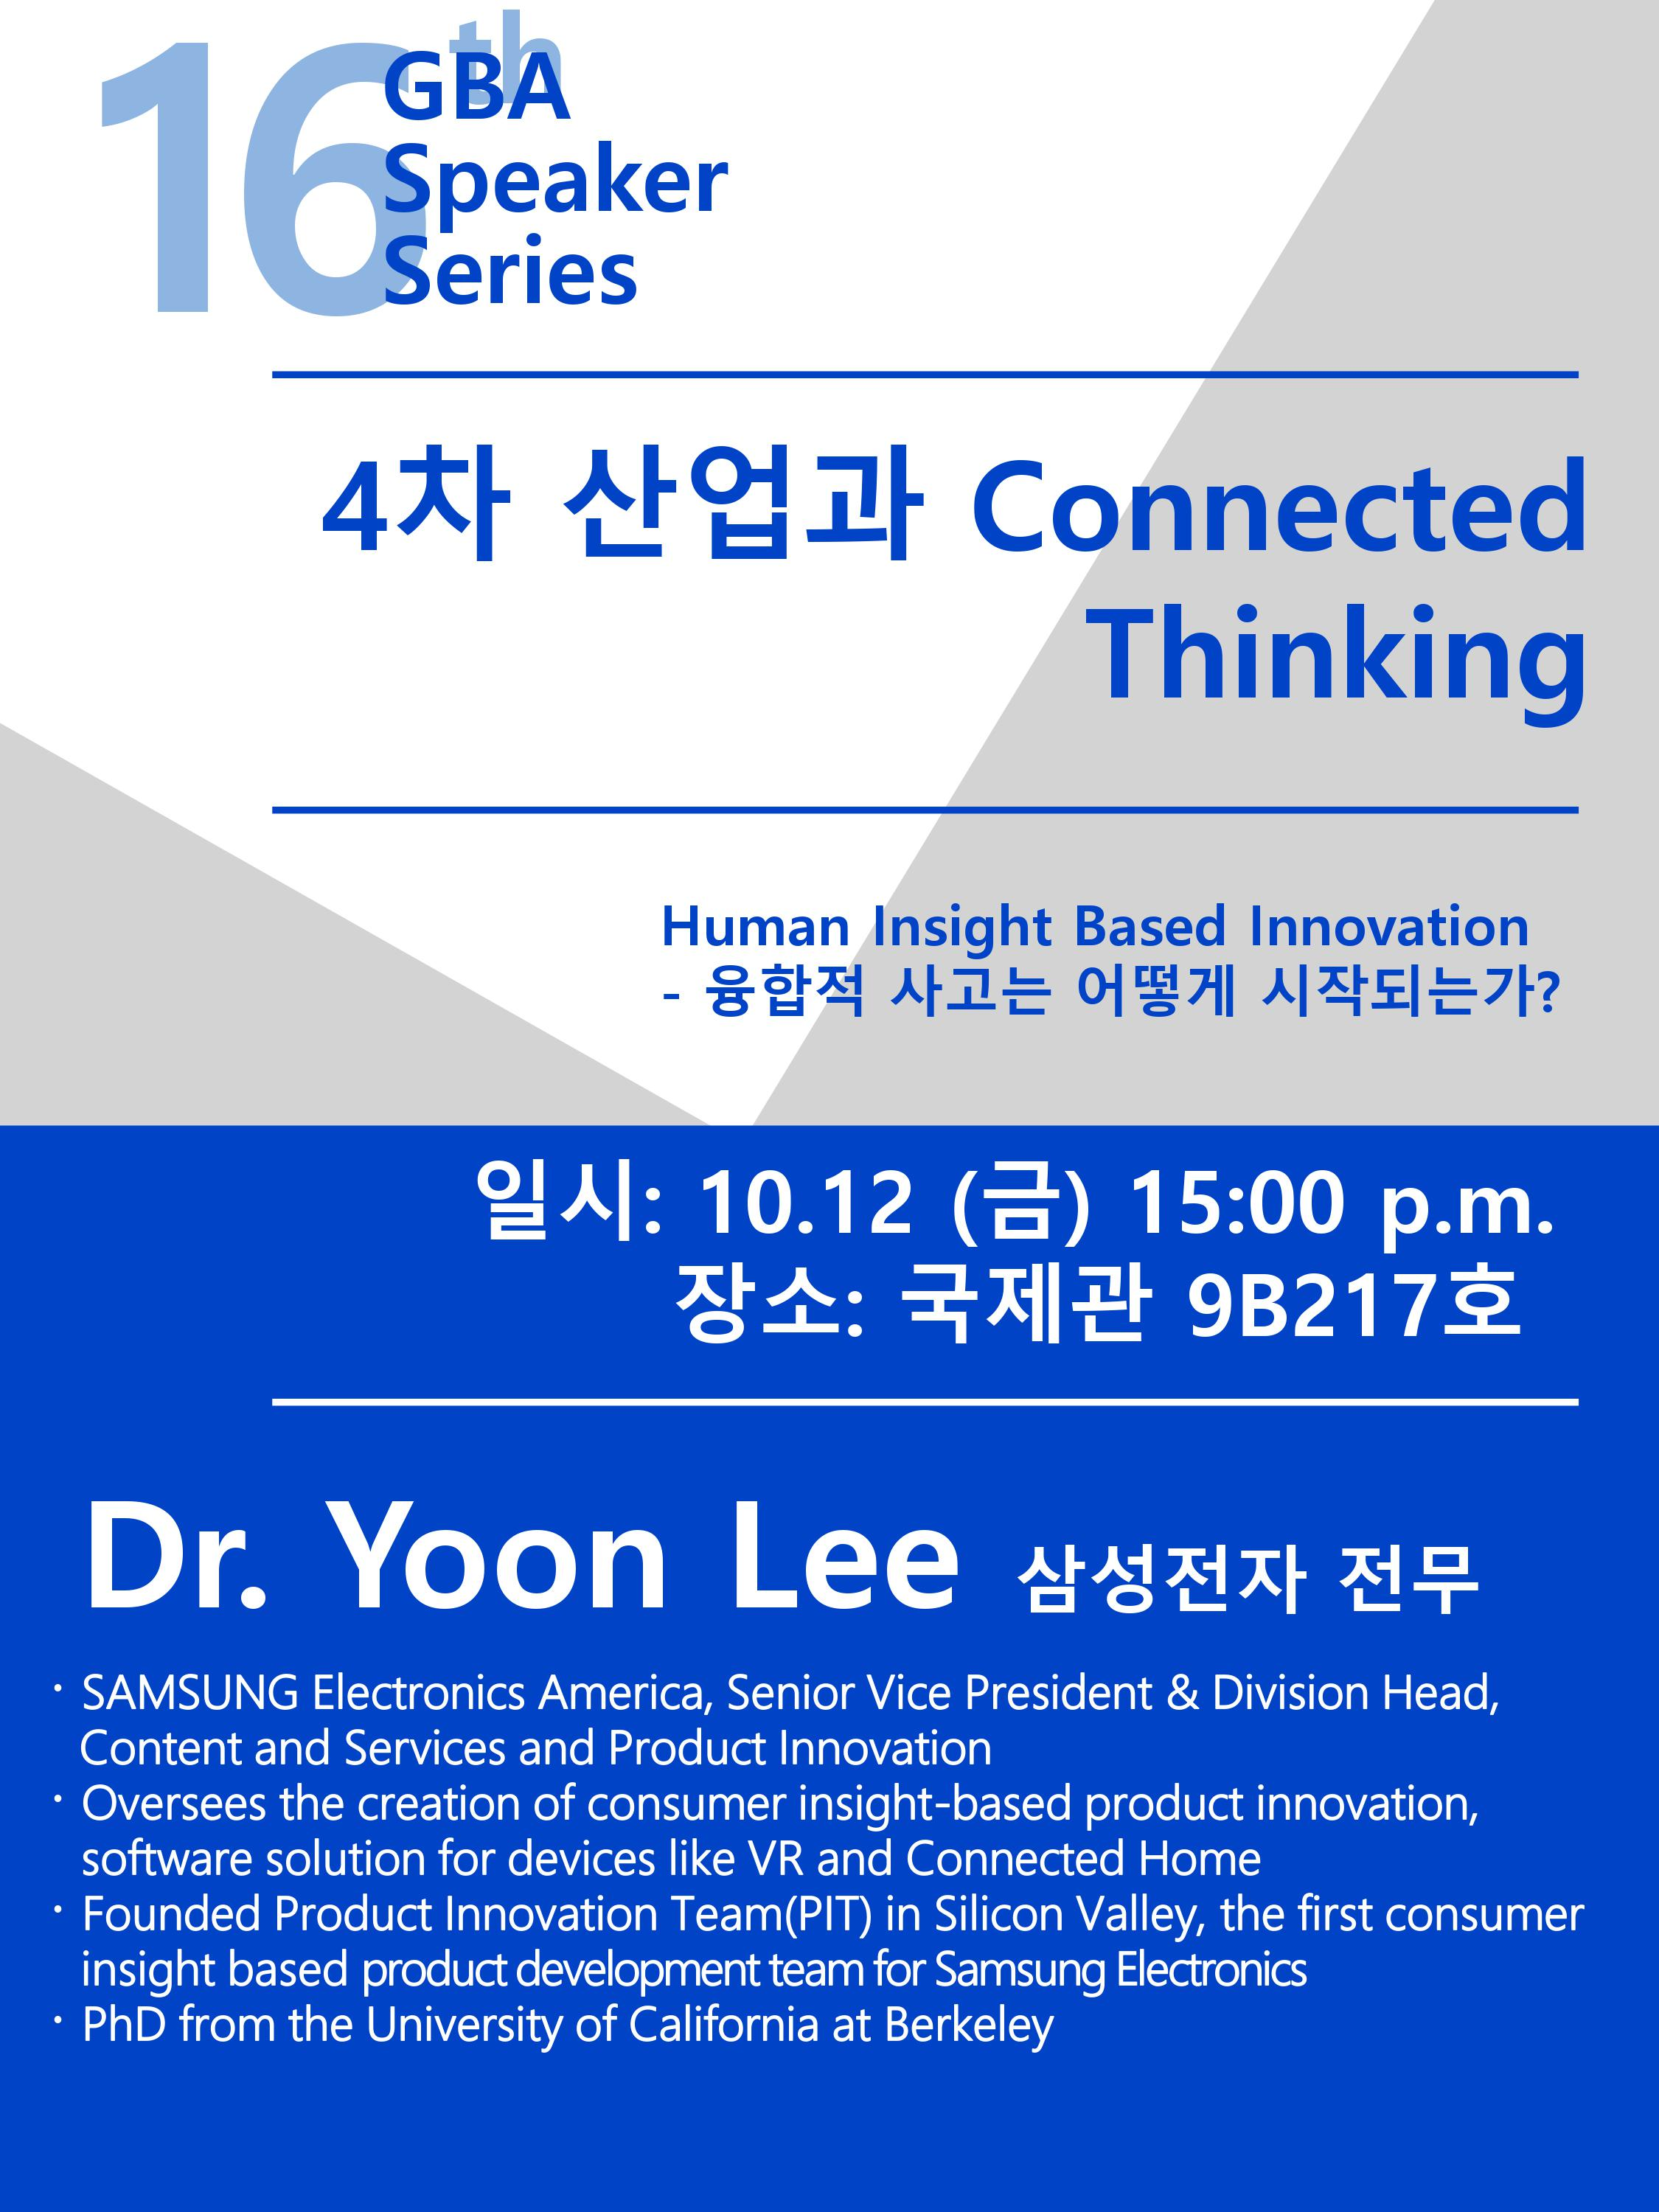 16th GBA Speaker Series - 4차산업과 Connected Thinking